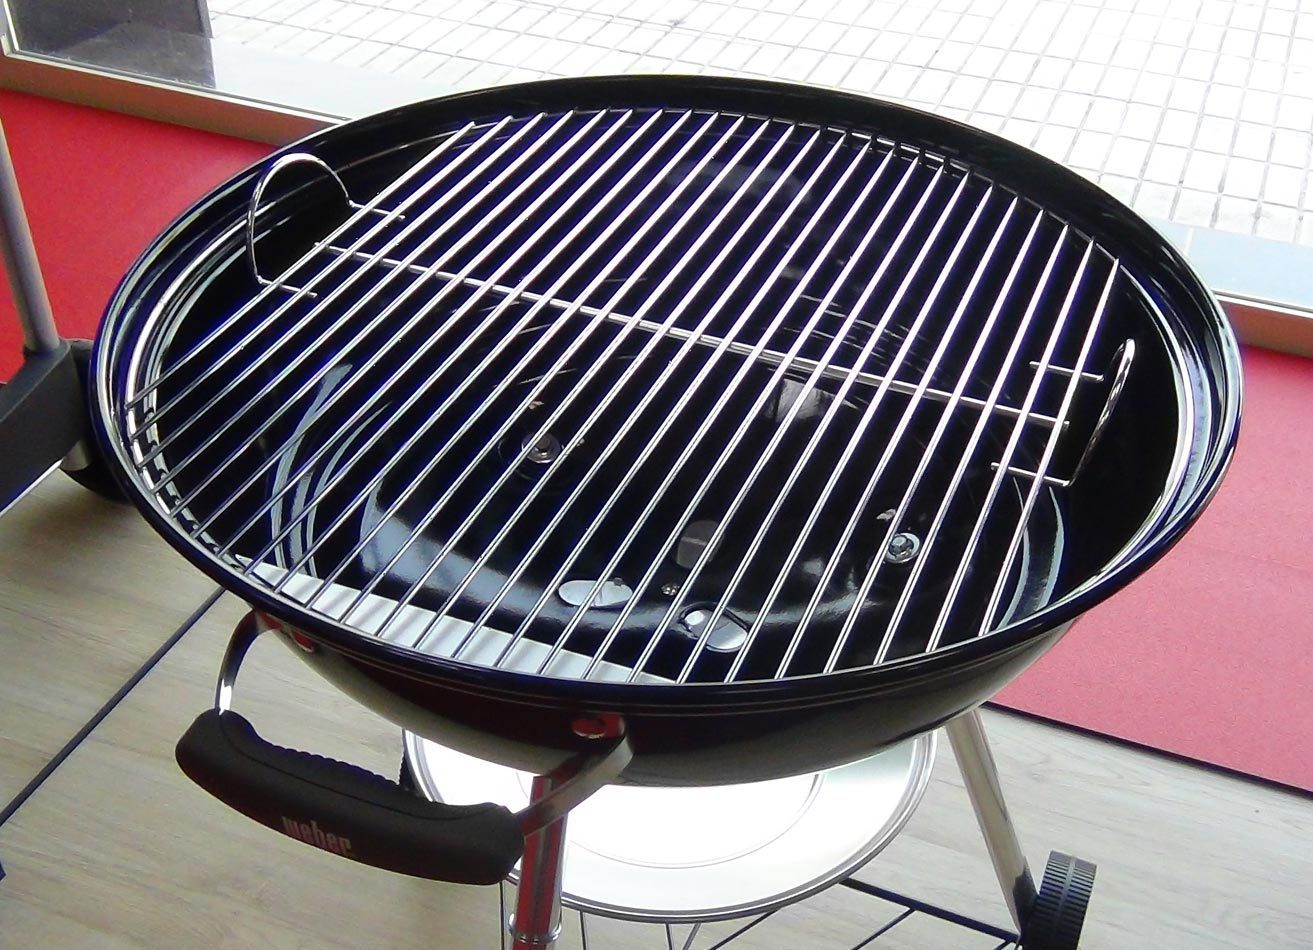 compact kettle 57 black barbecue the barbecue store. Black Bedroom Furniture Sets. Home Design Ideas